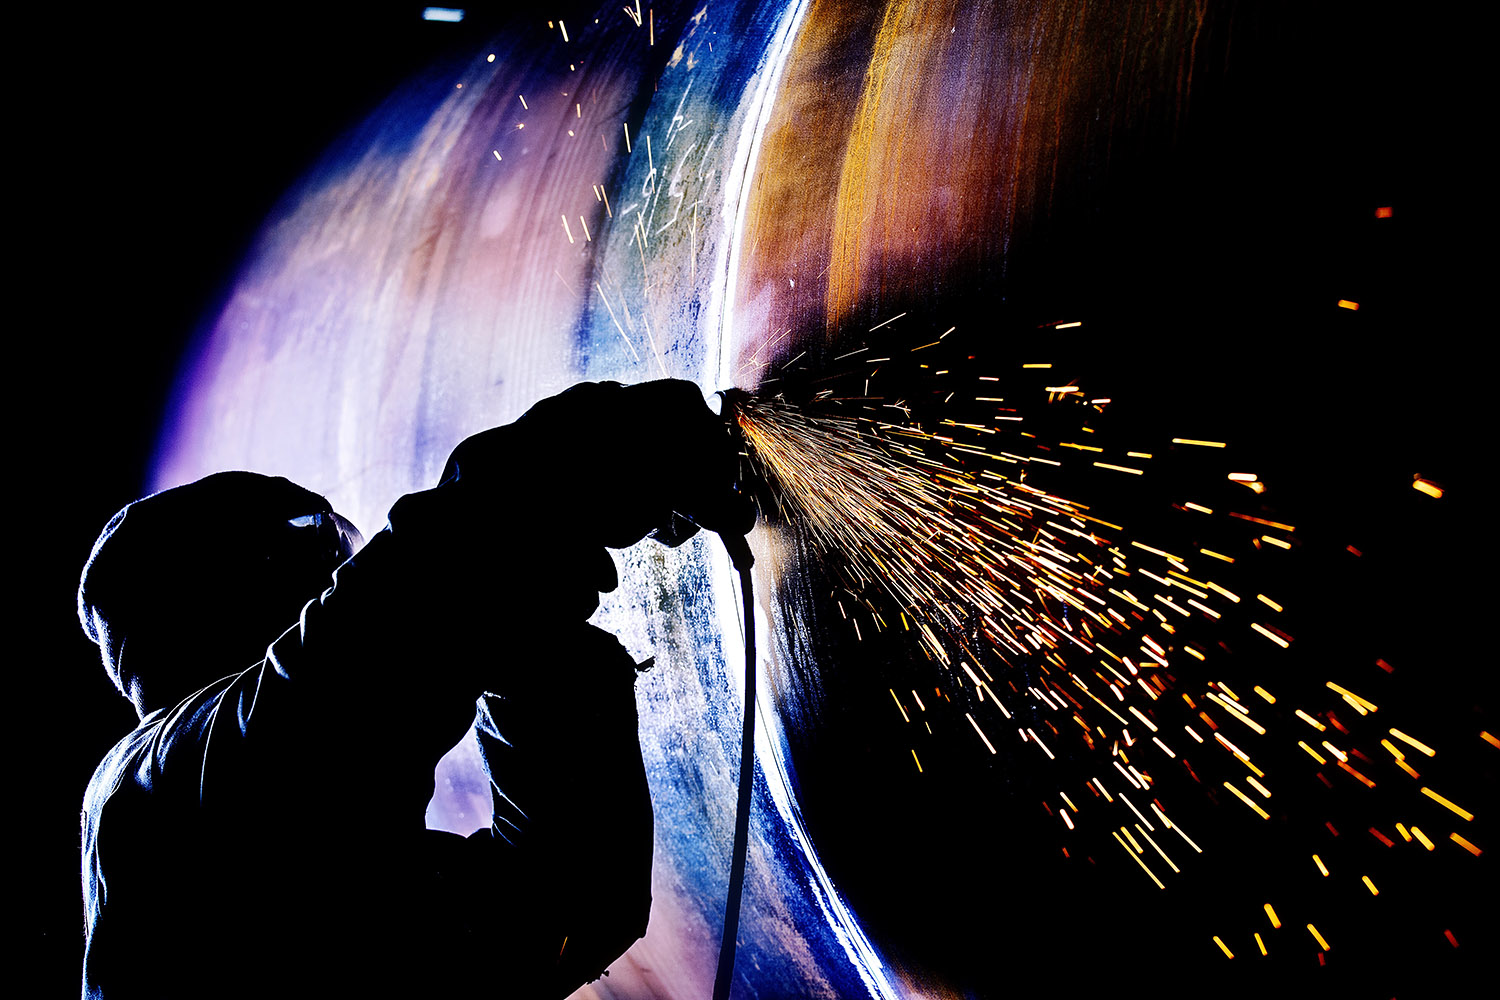 Industrial Commercial silhouette Portrait of man with sparks flying from grinding disc © Paul Worpole Photography